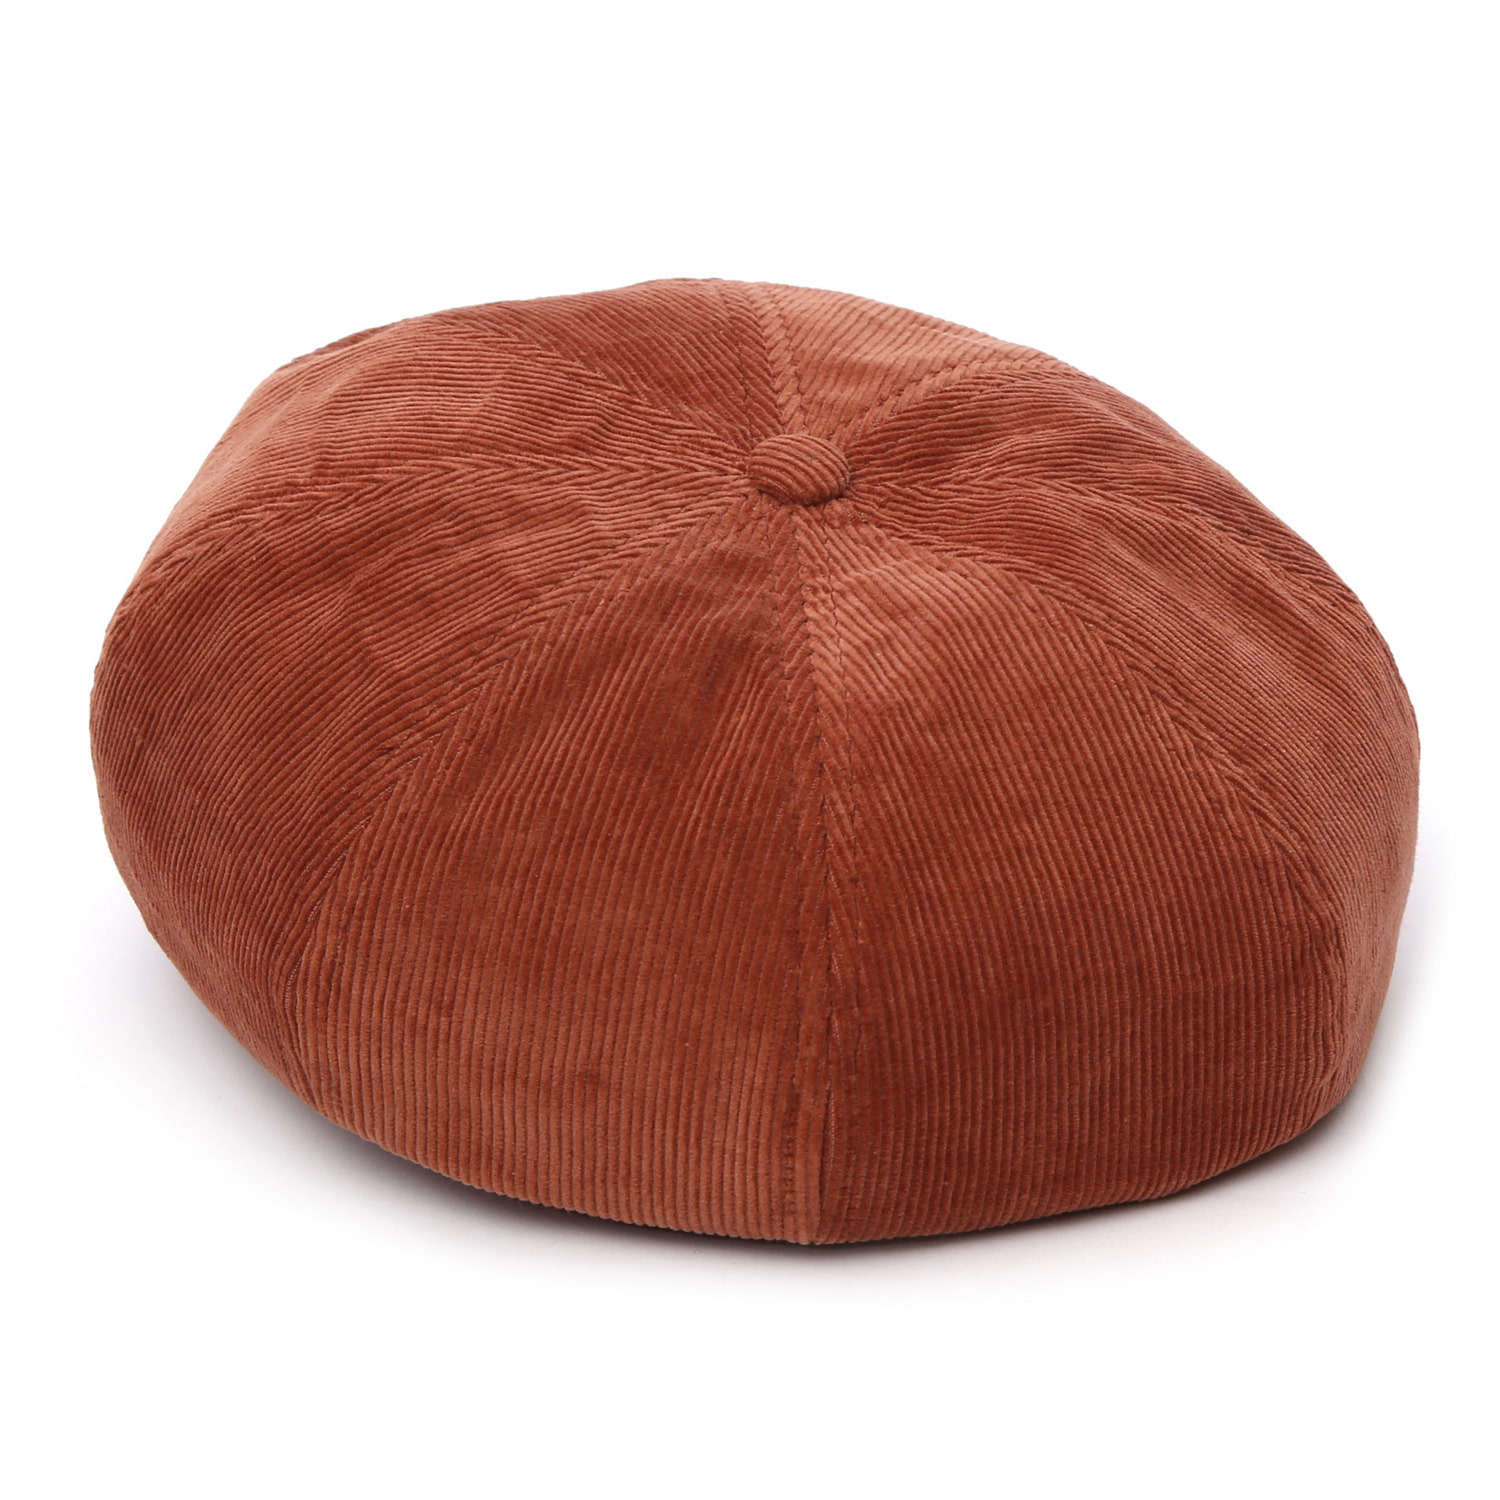 BREAD BERET / CORDUROY / COPPER ORANGE